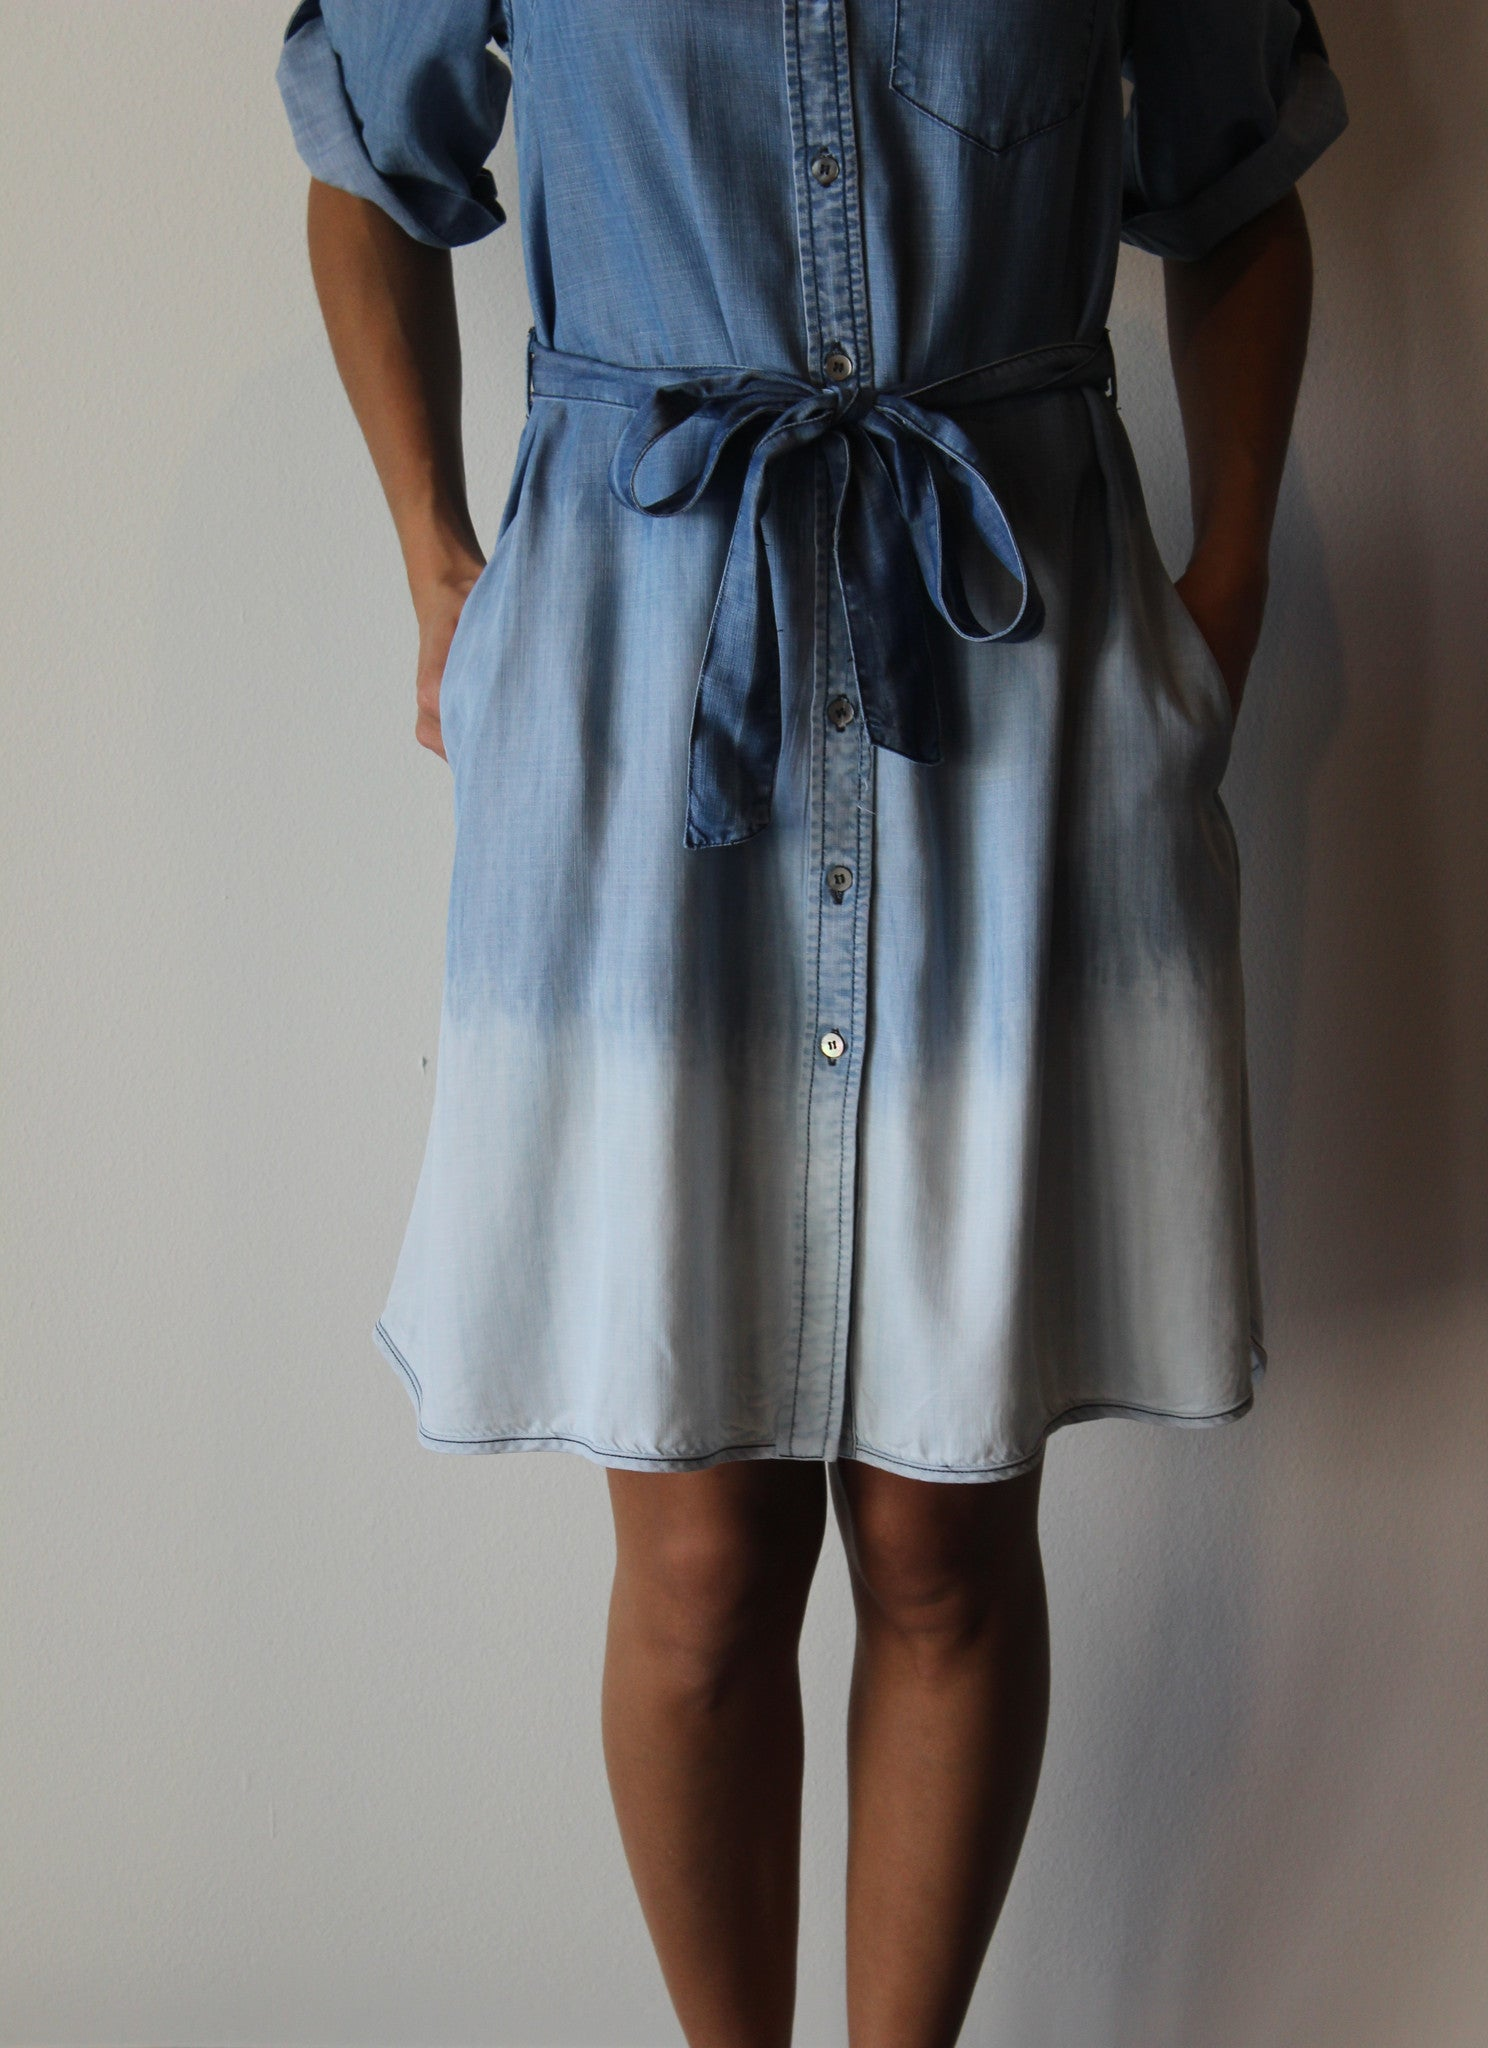 Ombré Chambray Dress